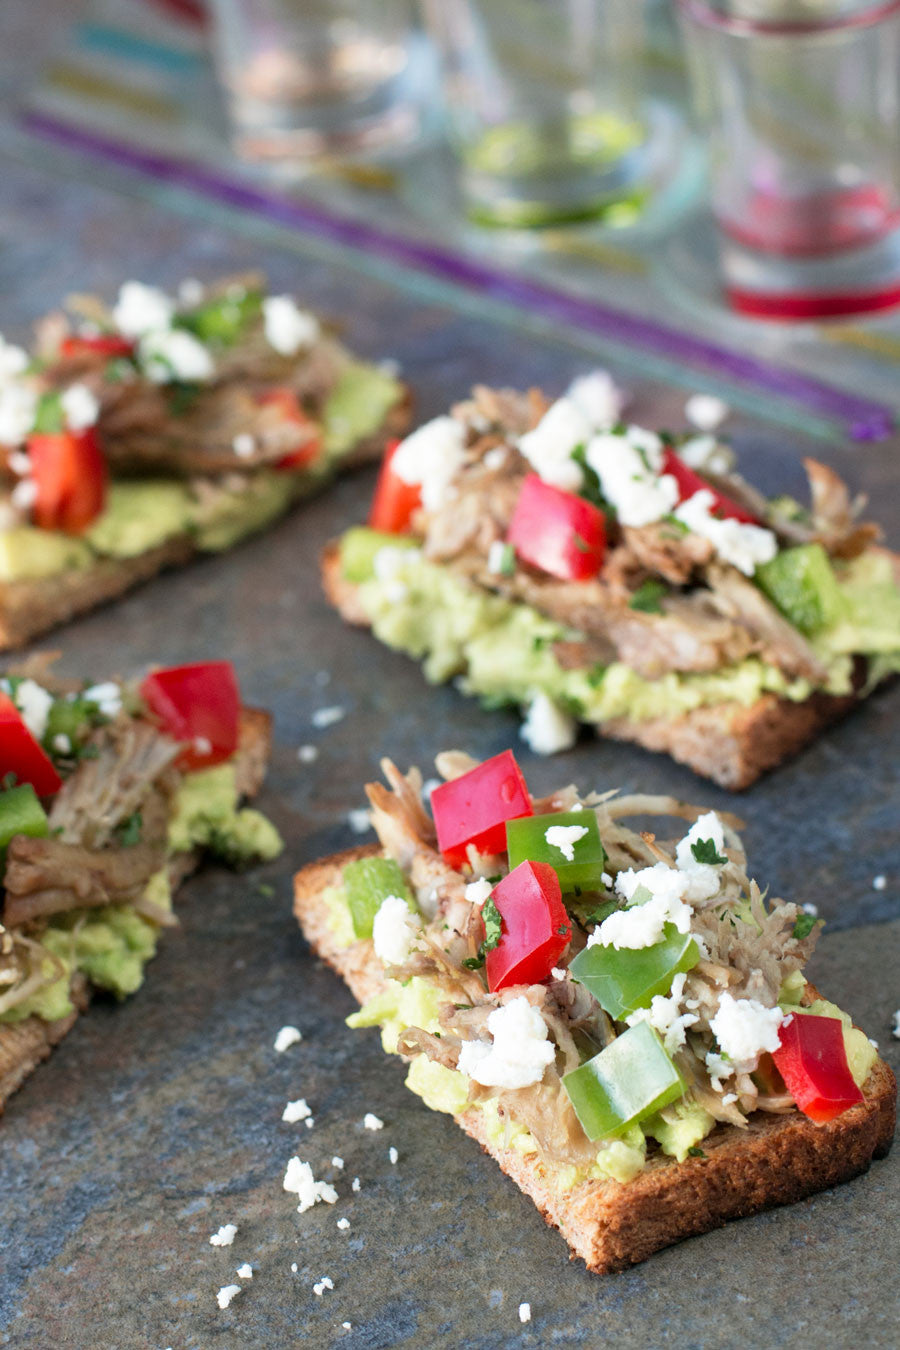 Pulled Pork Veggie Avocado Toasts | Sauce + Style Blog (pigofthhemonth.com)